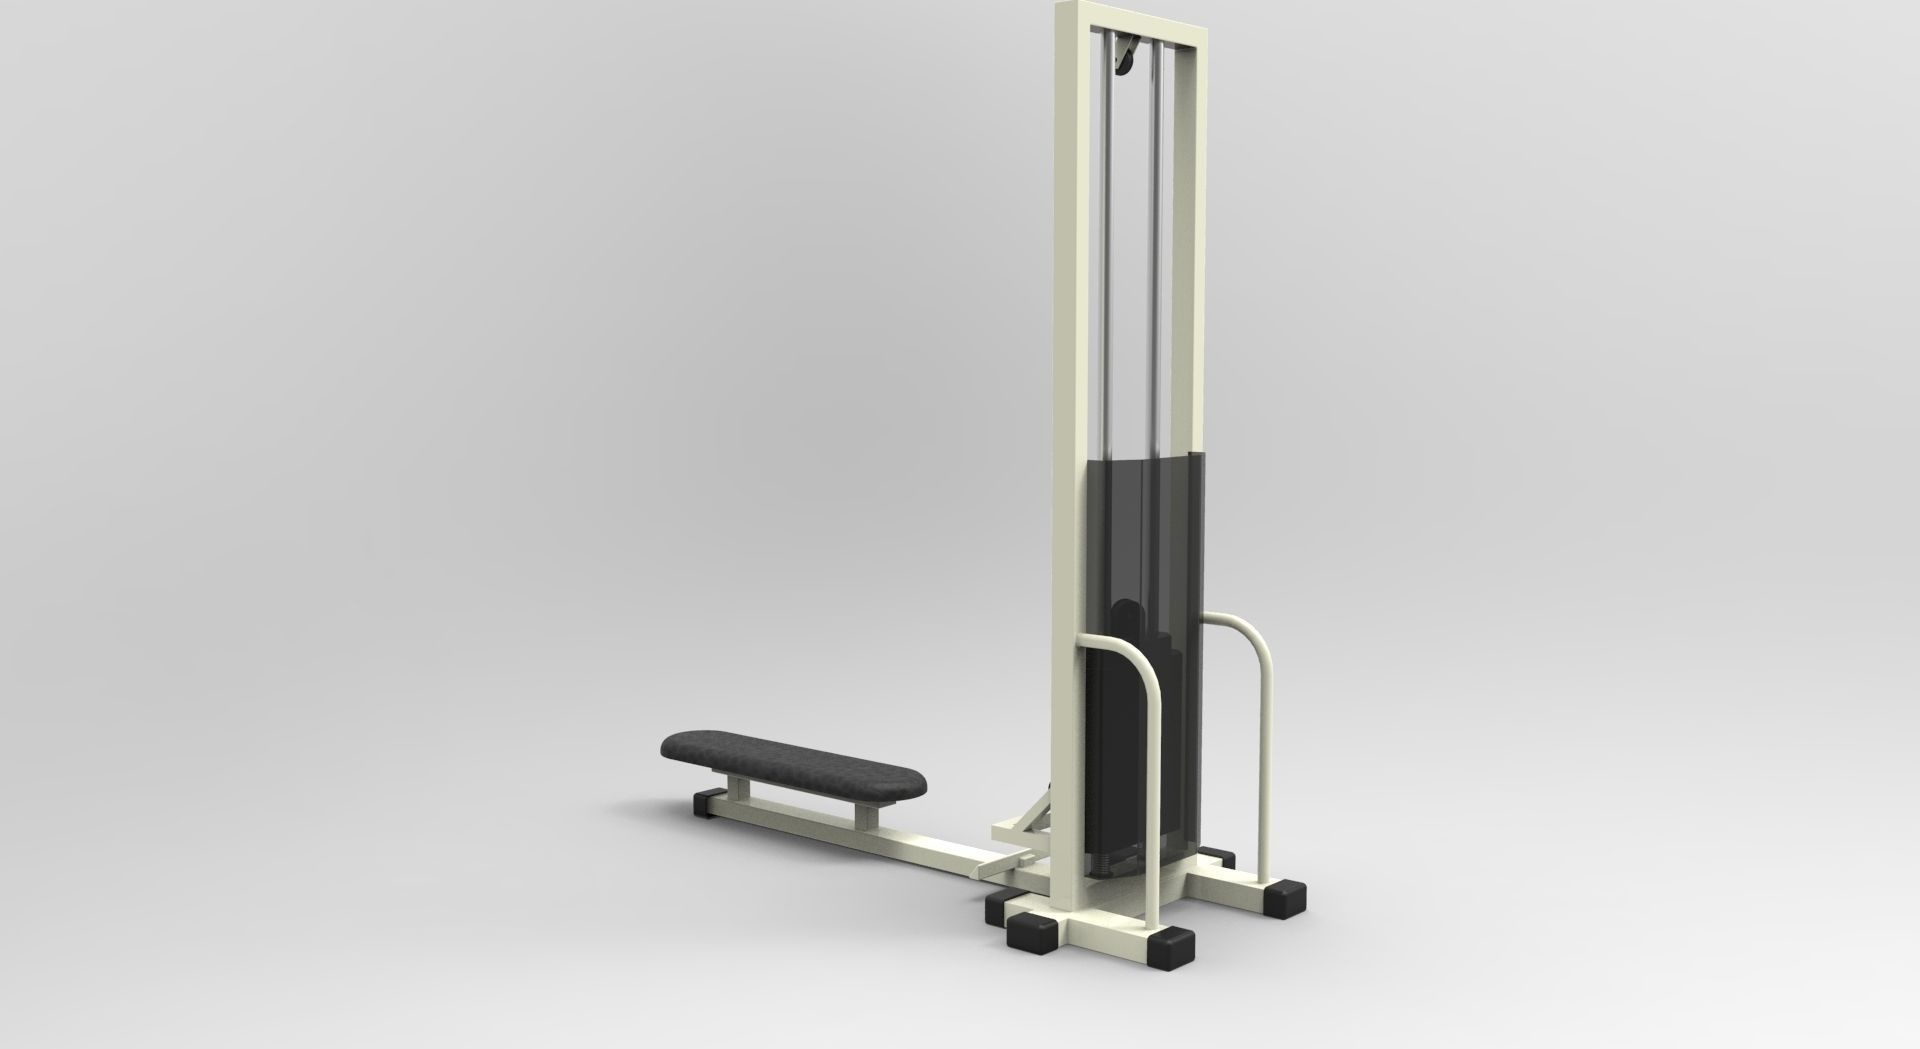 seated cable row machine for sale